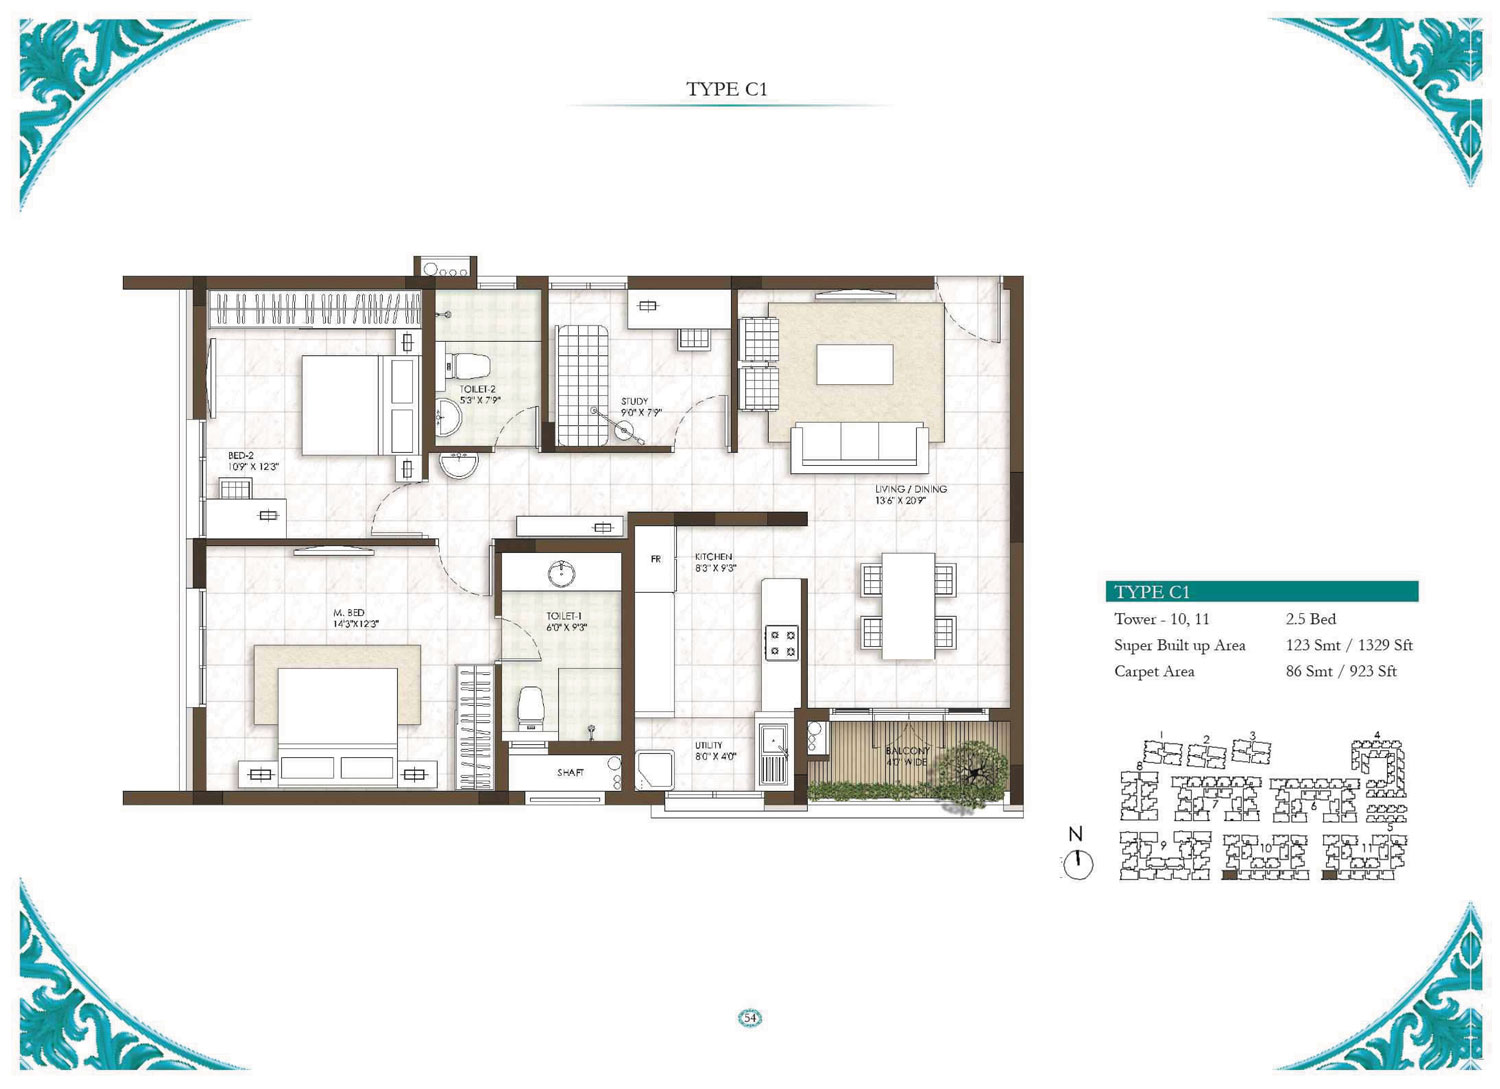 Type C1 - 2.5 Bed - 1329 Sq Ft